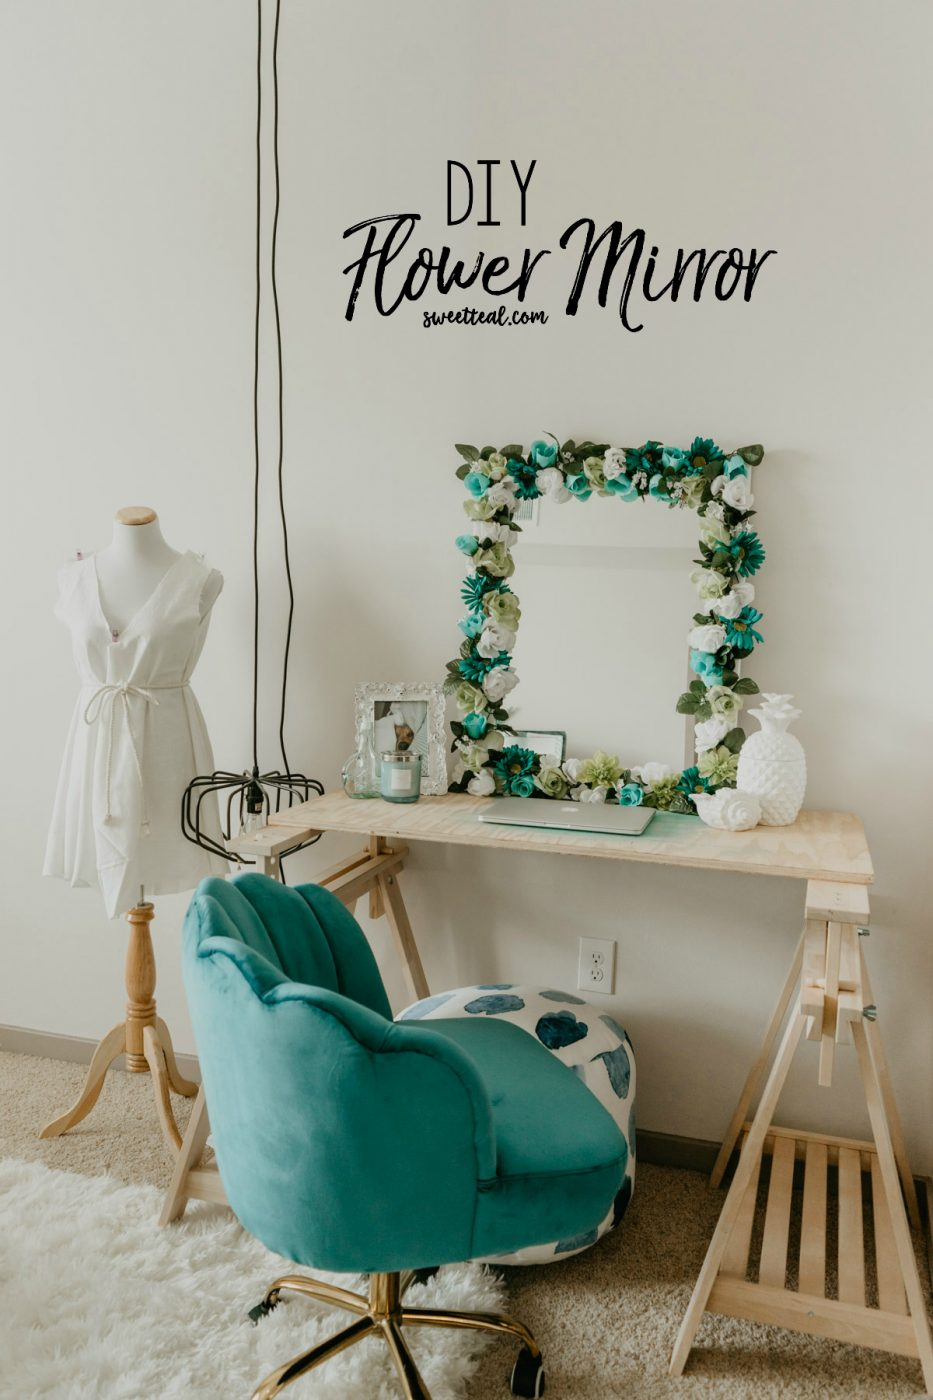 DIY Flower Mirror - Sweet Teal